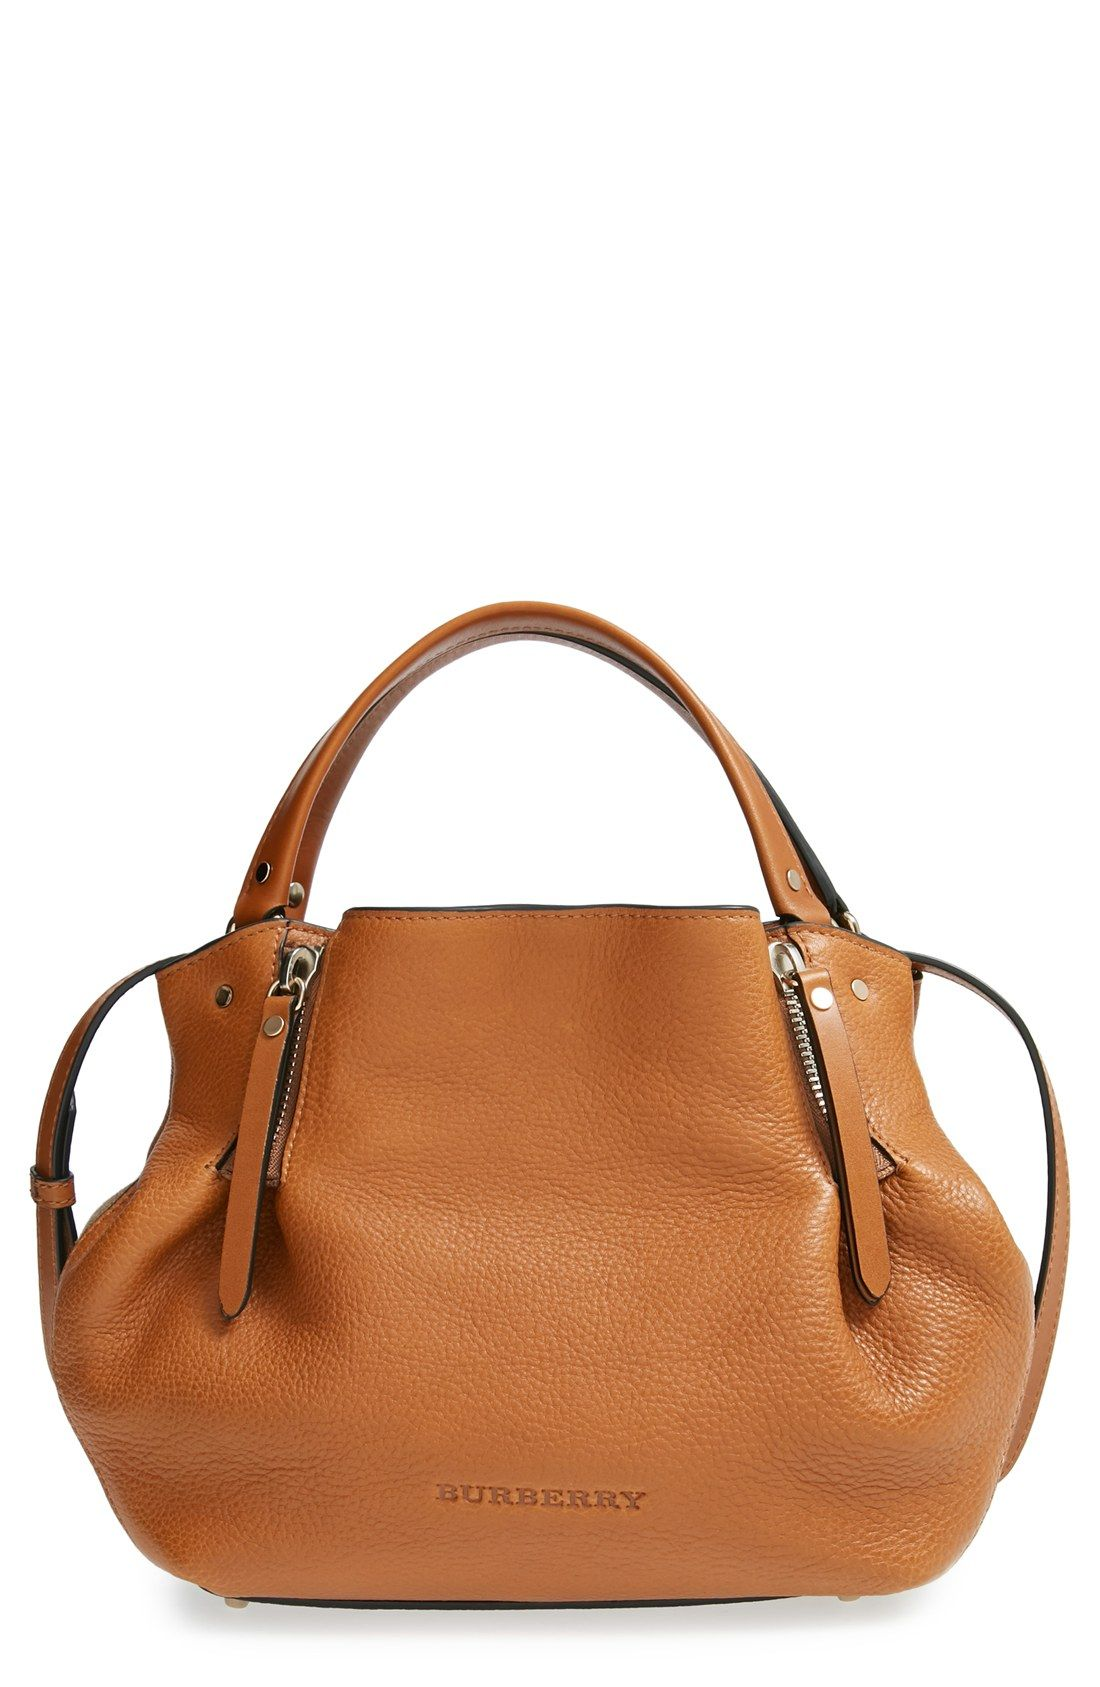 Burberry Bags Nordstrom